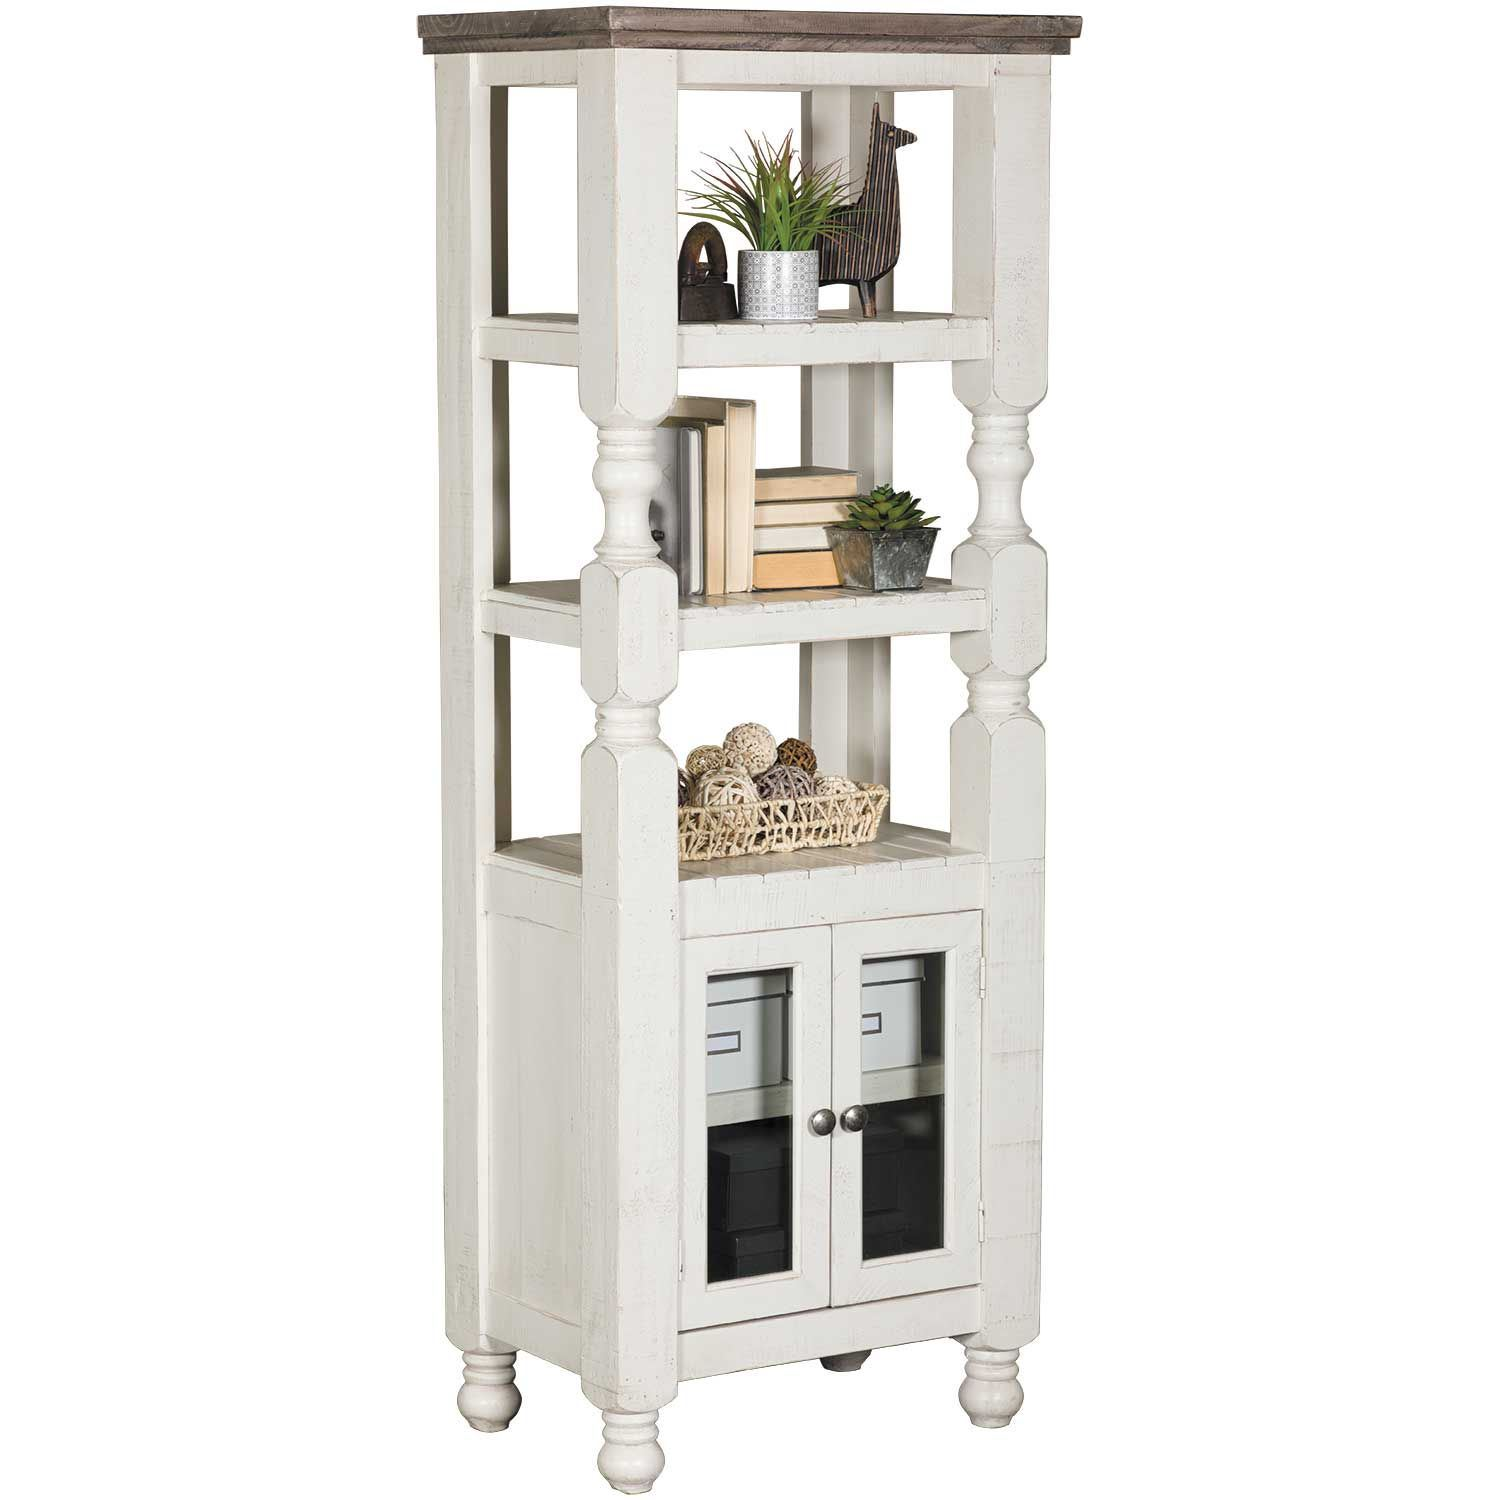 Picture of Stone Bookcase / Wall Unit Pier